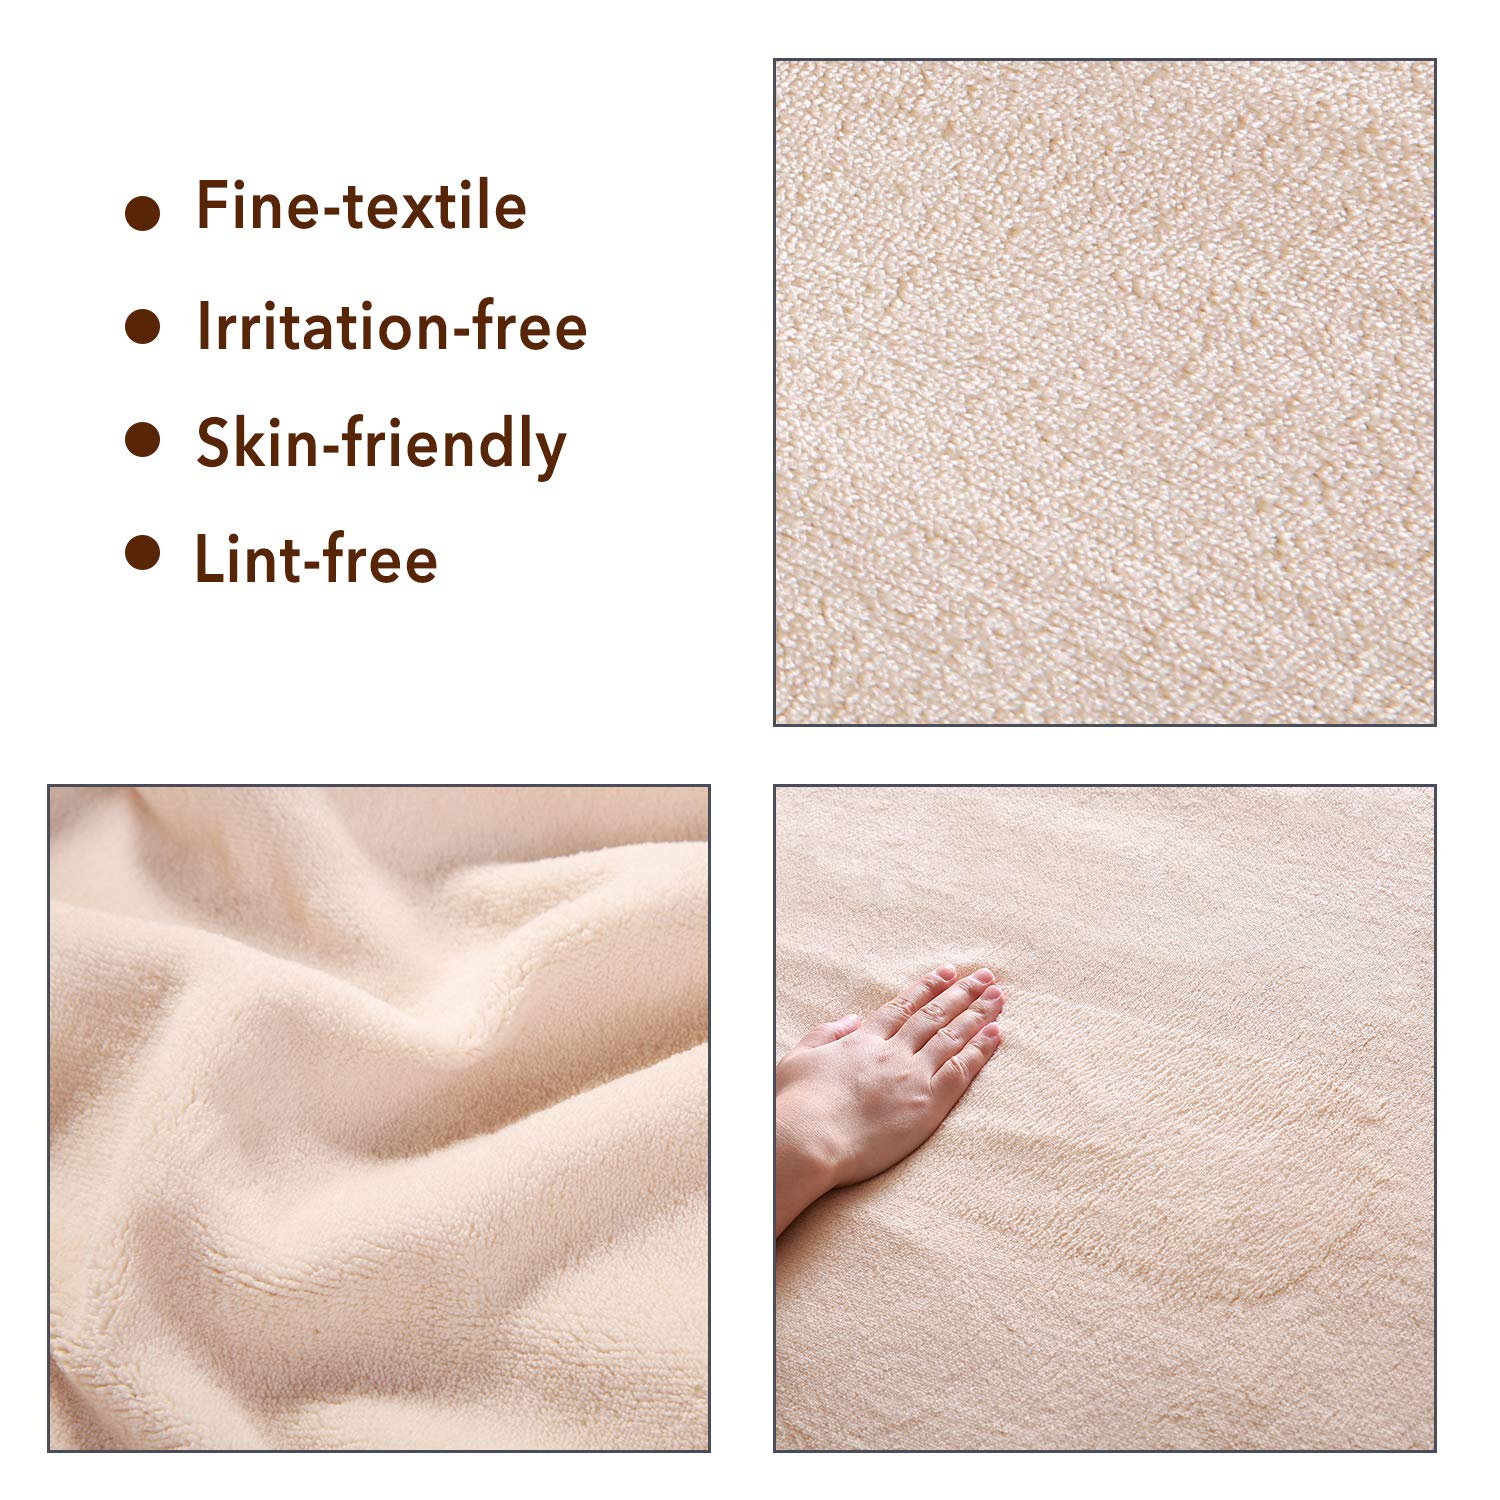 Warm /& Comfortable Relief Tense Muscle Home Use Heated Mattress Underblanket Soft Coral Velvet Fast Heating 10 Heat /& 9 Timer Settings Auto Off Twin Size ETL Certification Overheating Protection